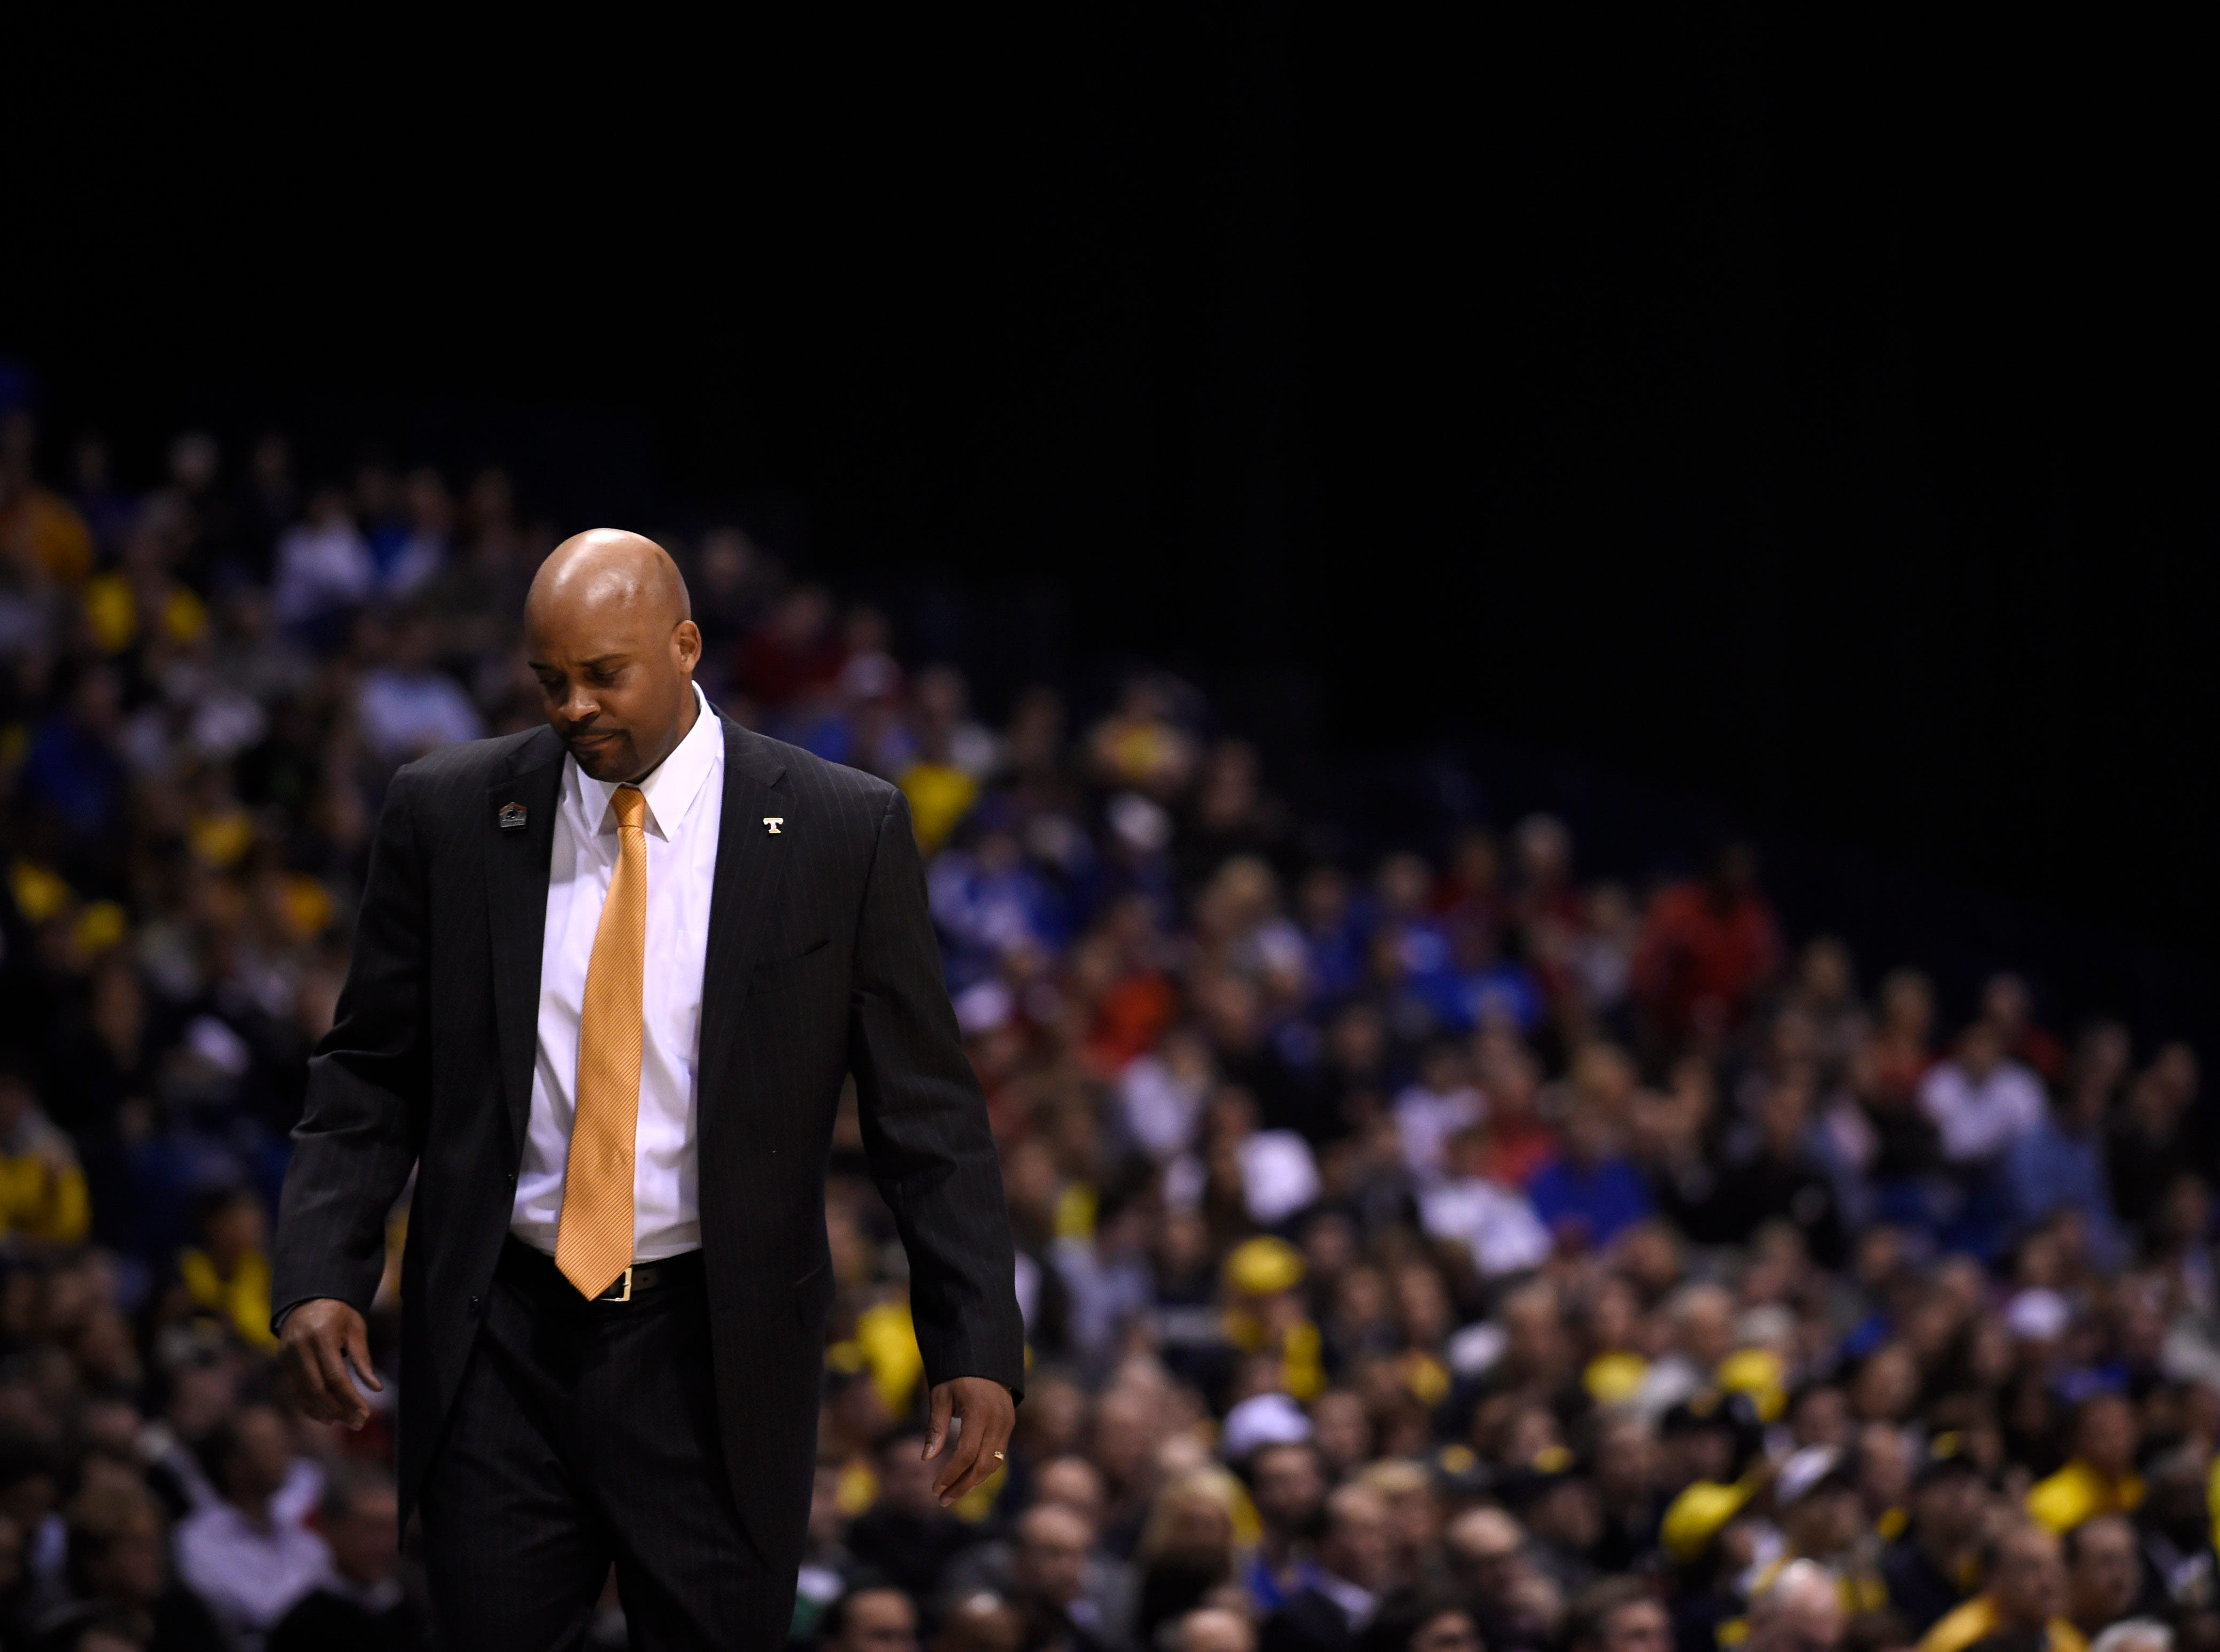 Tennessee head coach Cuonzo Martin walks towards the bench during an NCAA Sweet 16 game at Lucas Oil Stadium in Indianapolis, Ind. on Friday, March 28, 2014.